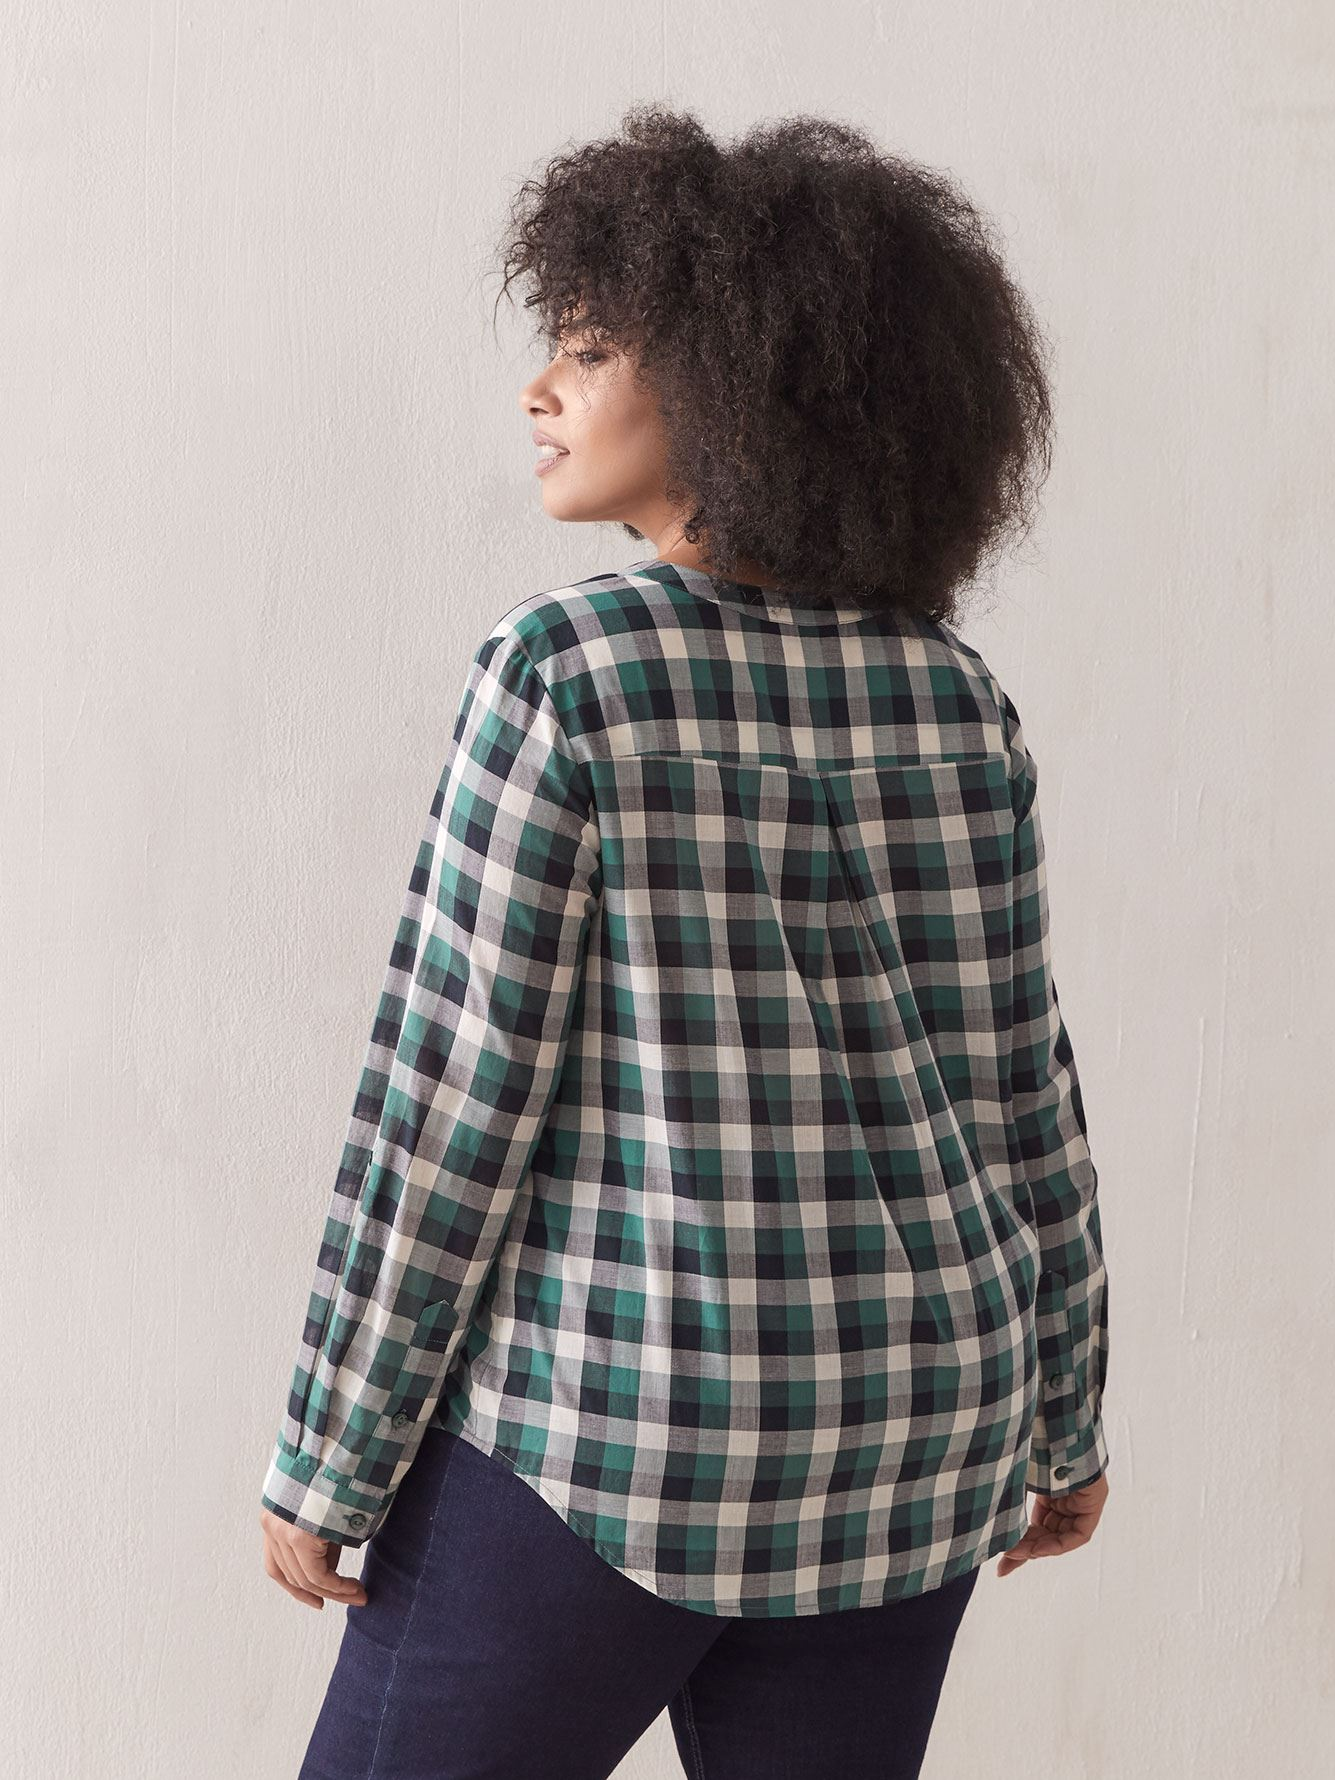 Cotton Plaid Shirt - In Every Story